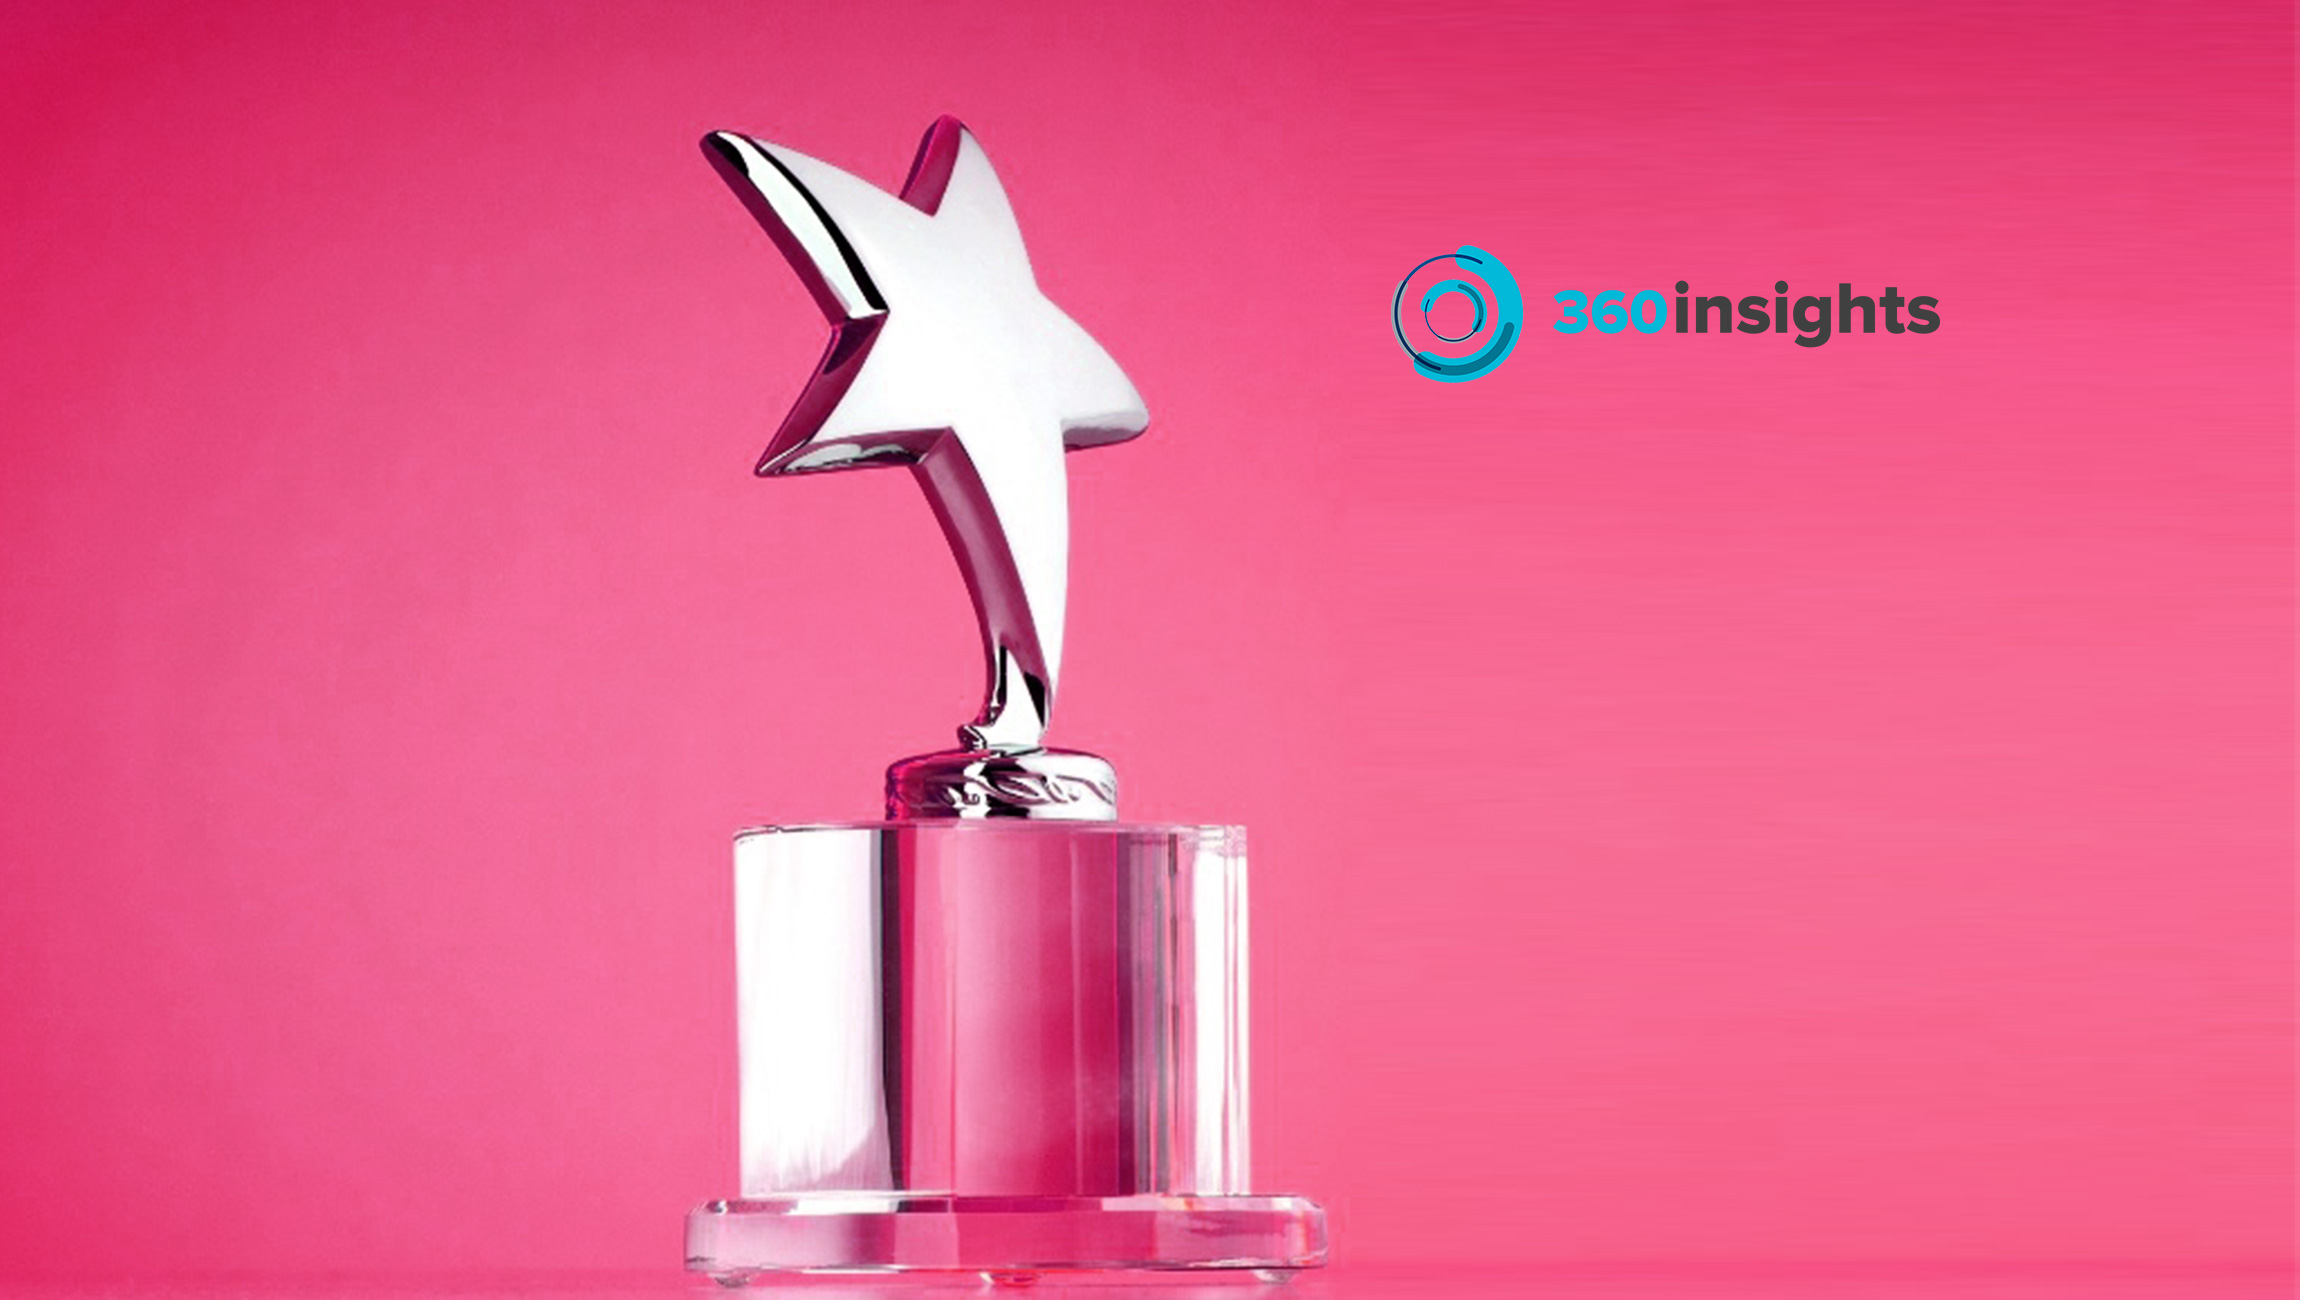 360insights Wins Sales and Service World Award for Best Cloud Computing and SaaS Product for Sales